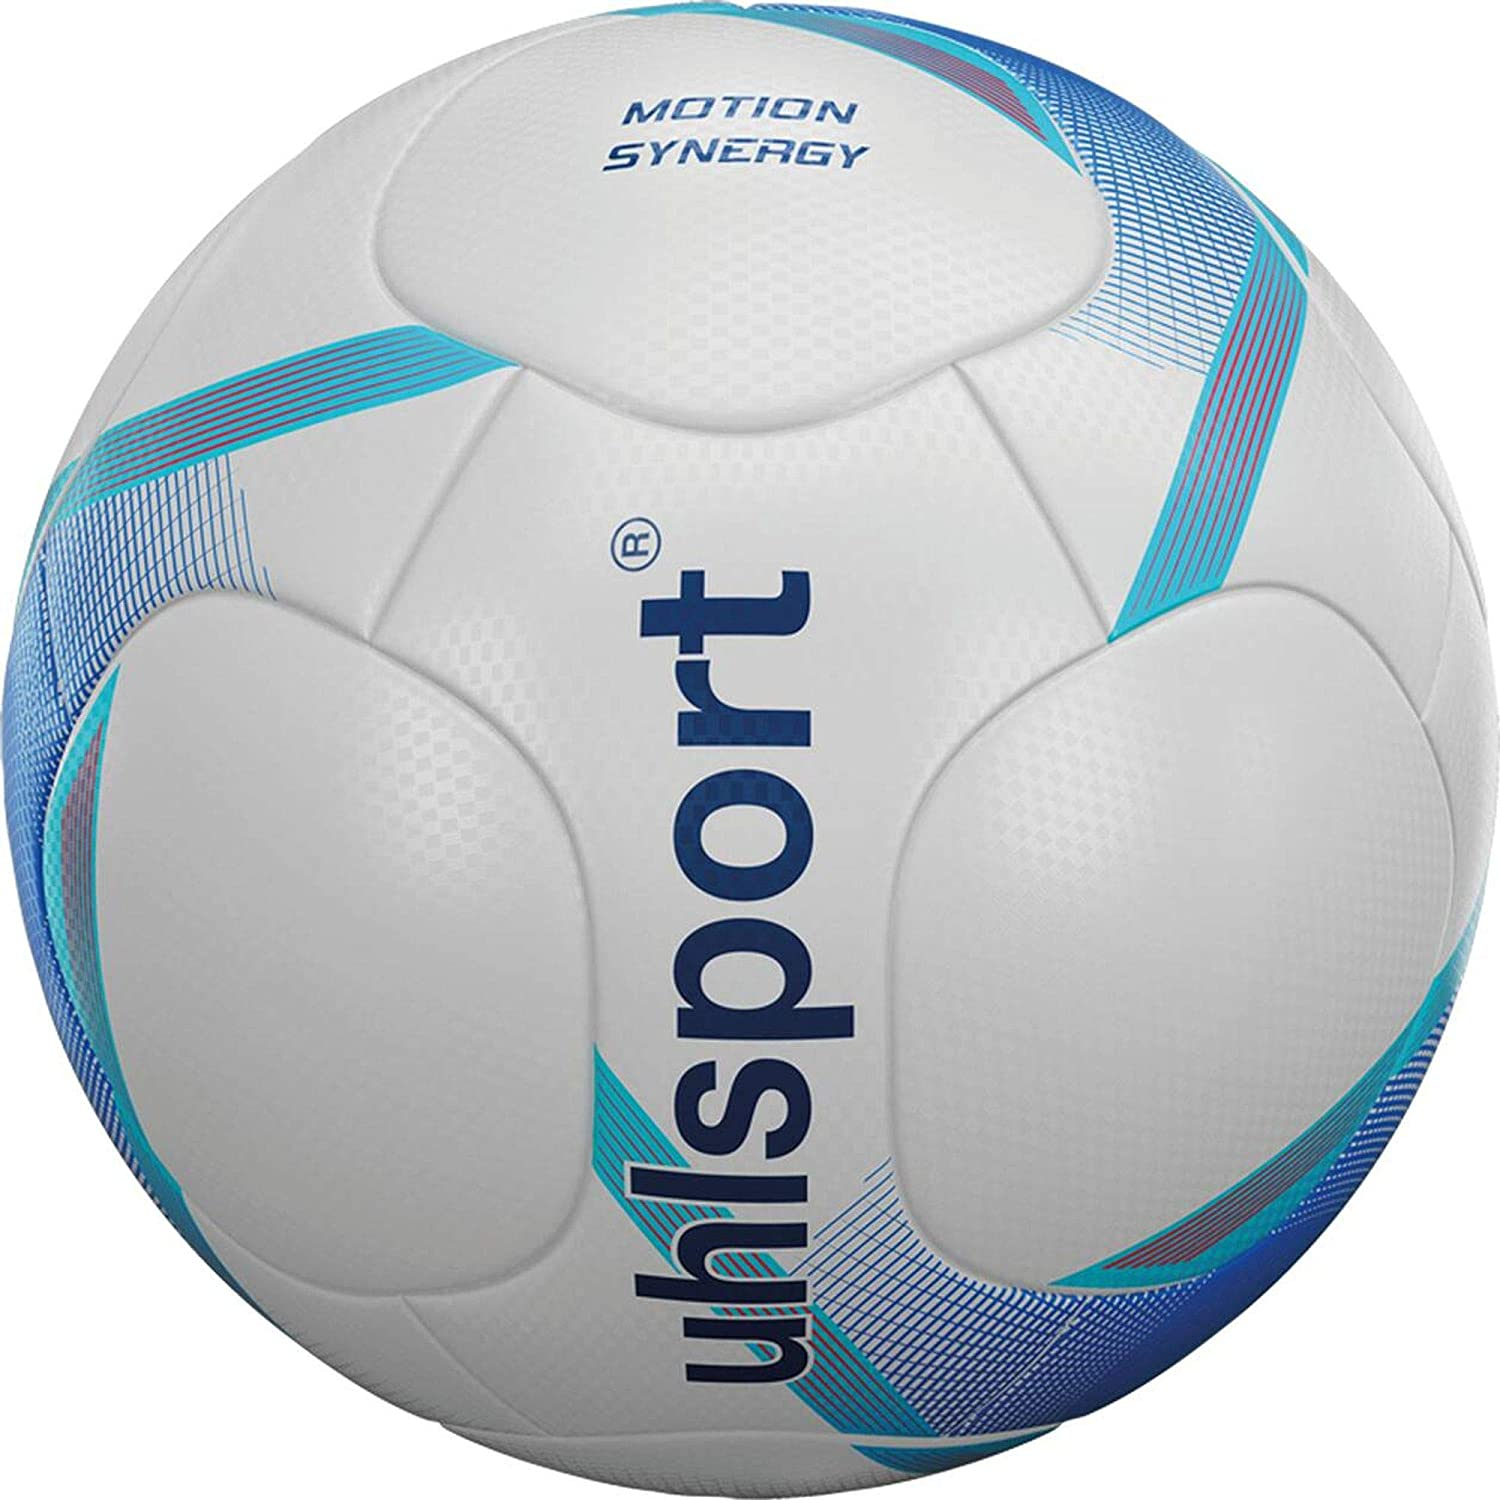 uhlsport Motion Synergy Balón de fútbol, Juventud Unisex: Amazon ...